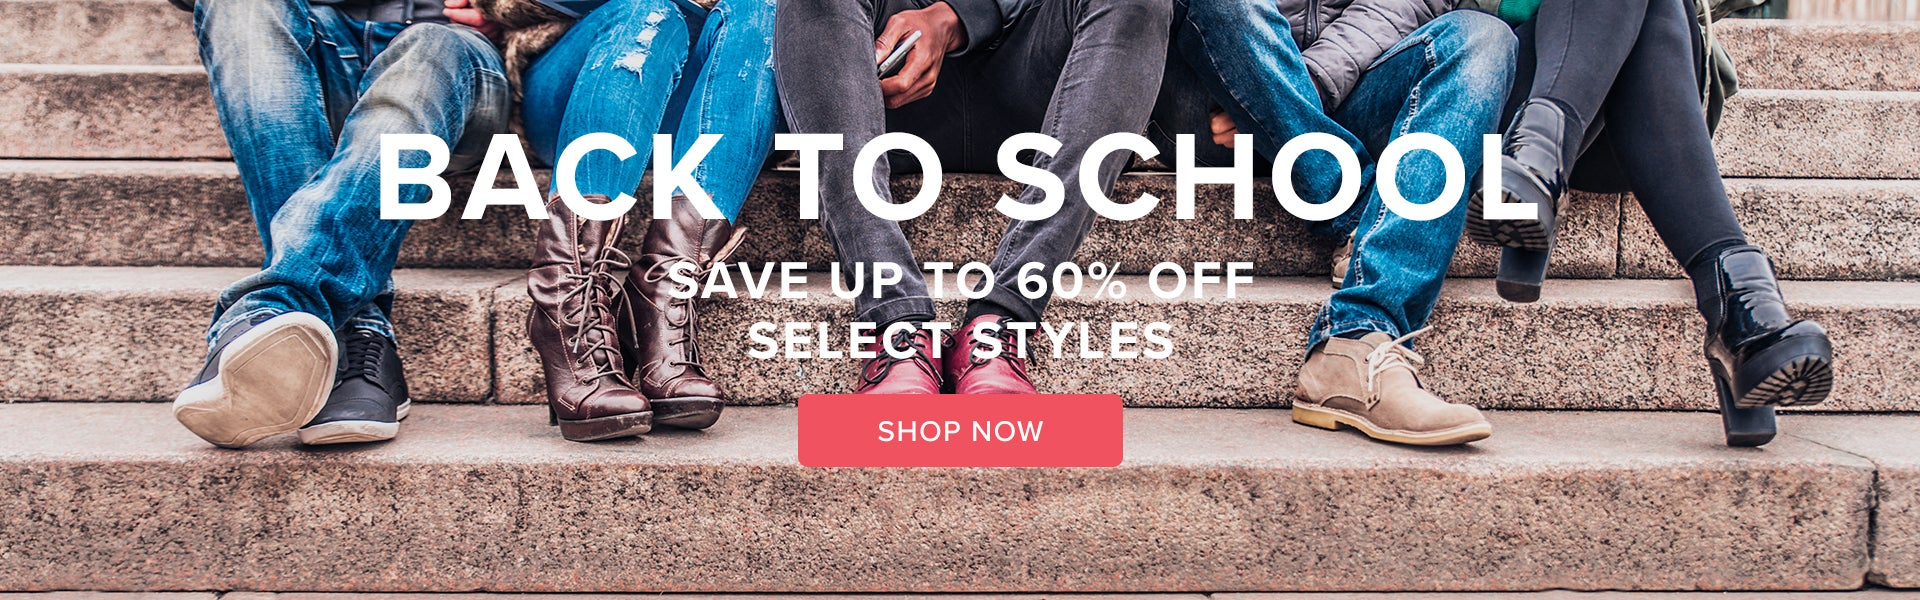 Back To School | STYLES FOR KIDS, TEACHERS, AND THE FAMILY | Shop now